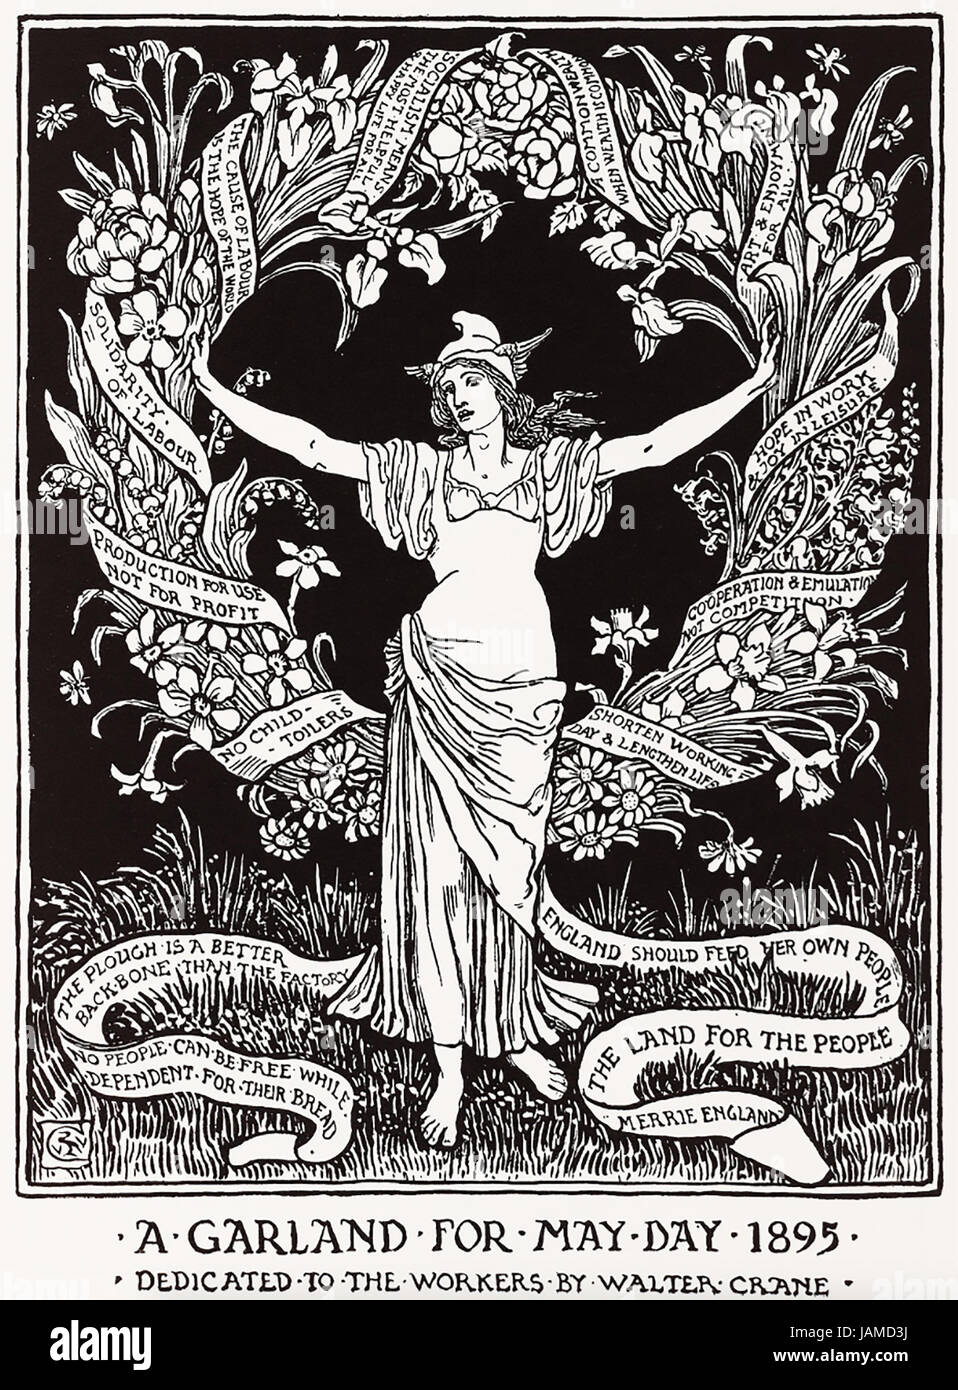 WALTER CRANE (1845-1915) English artist. Engraving from his 'Cartoons for the Cause 1886-1889' published - Stock Image